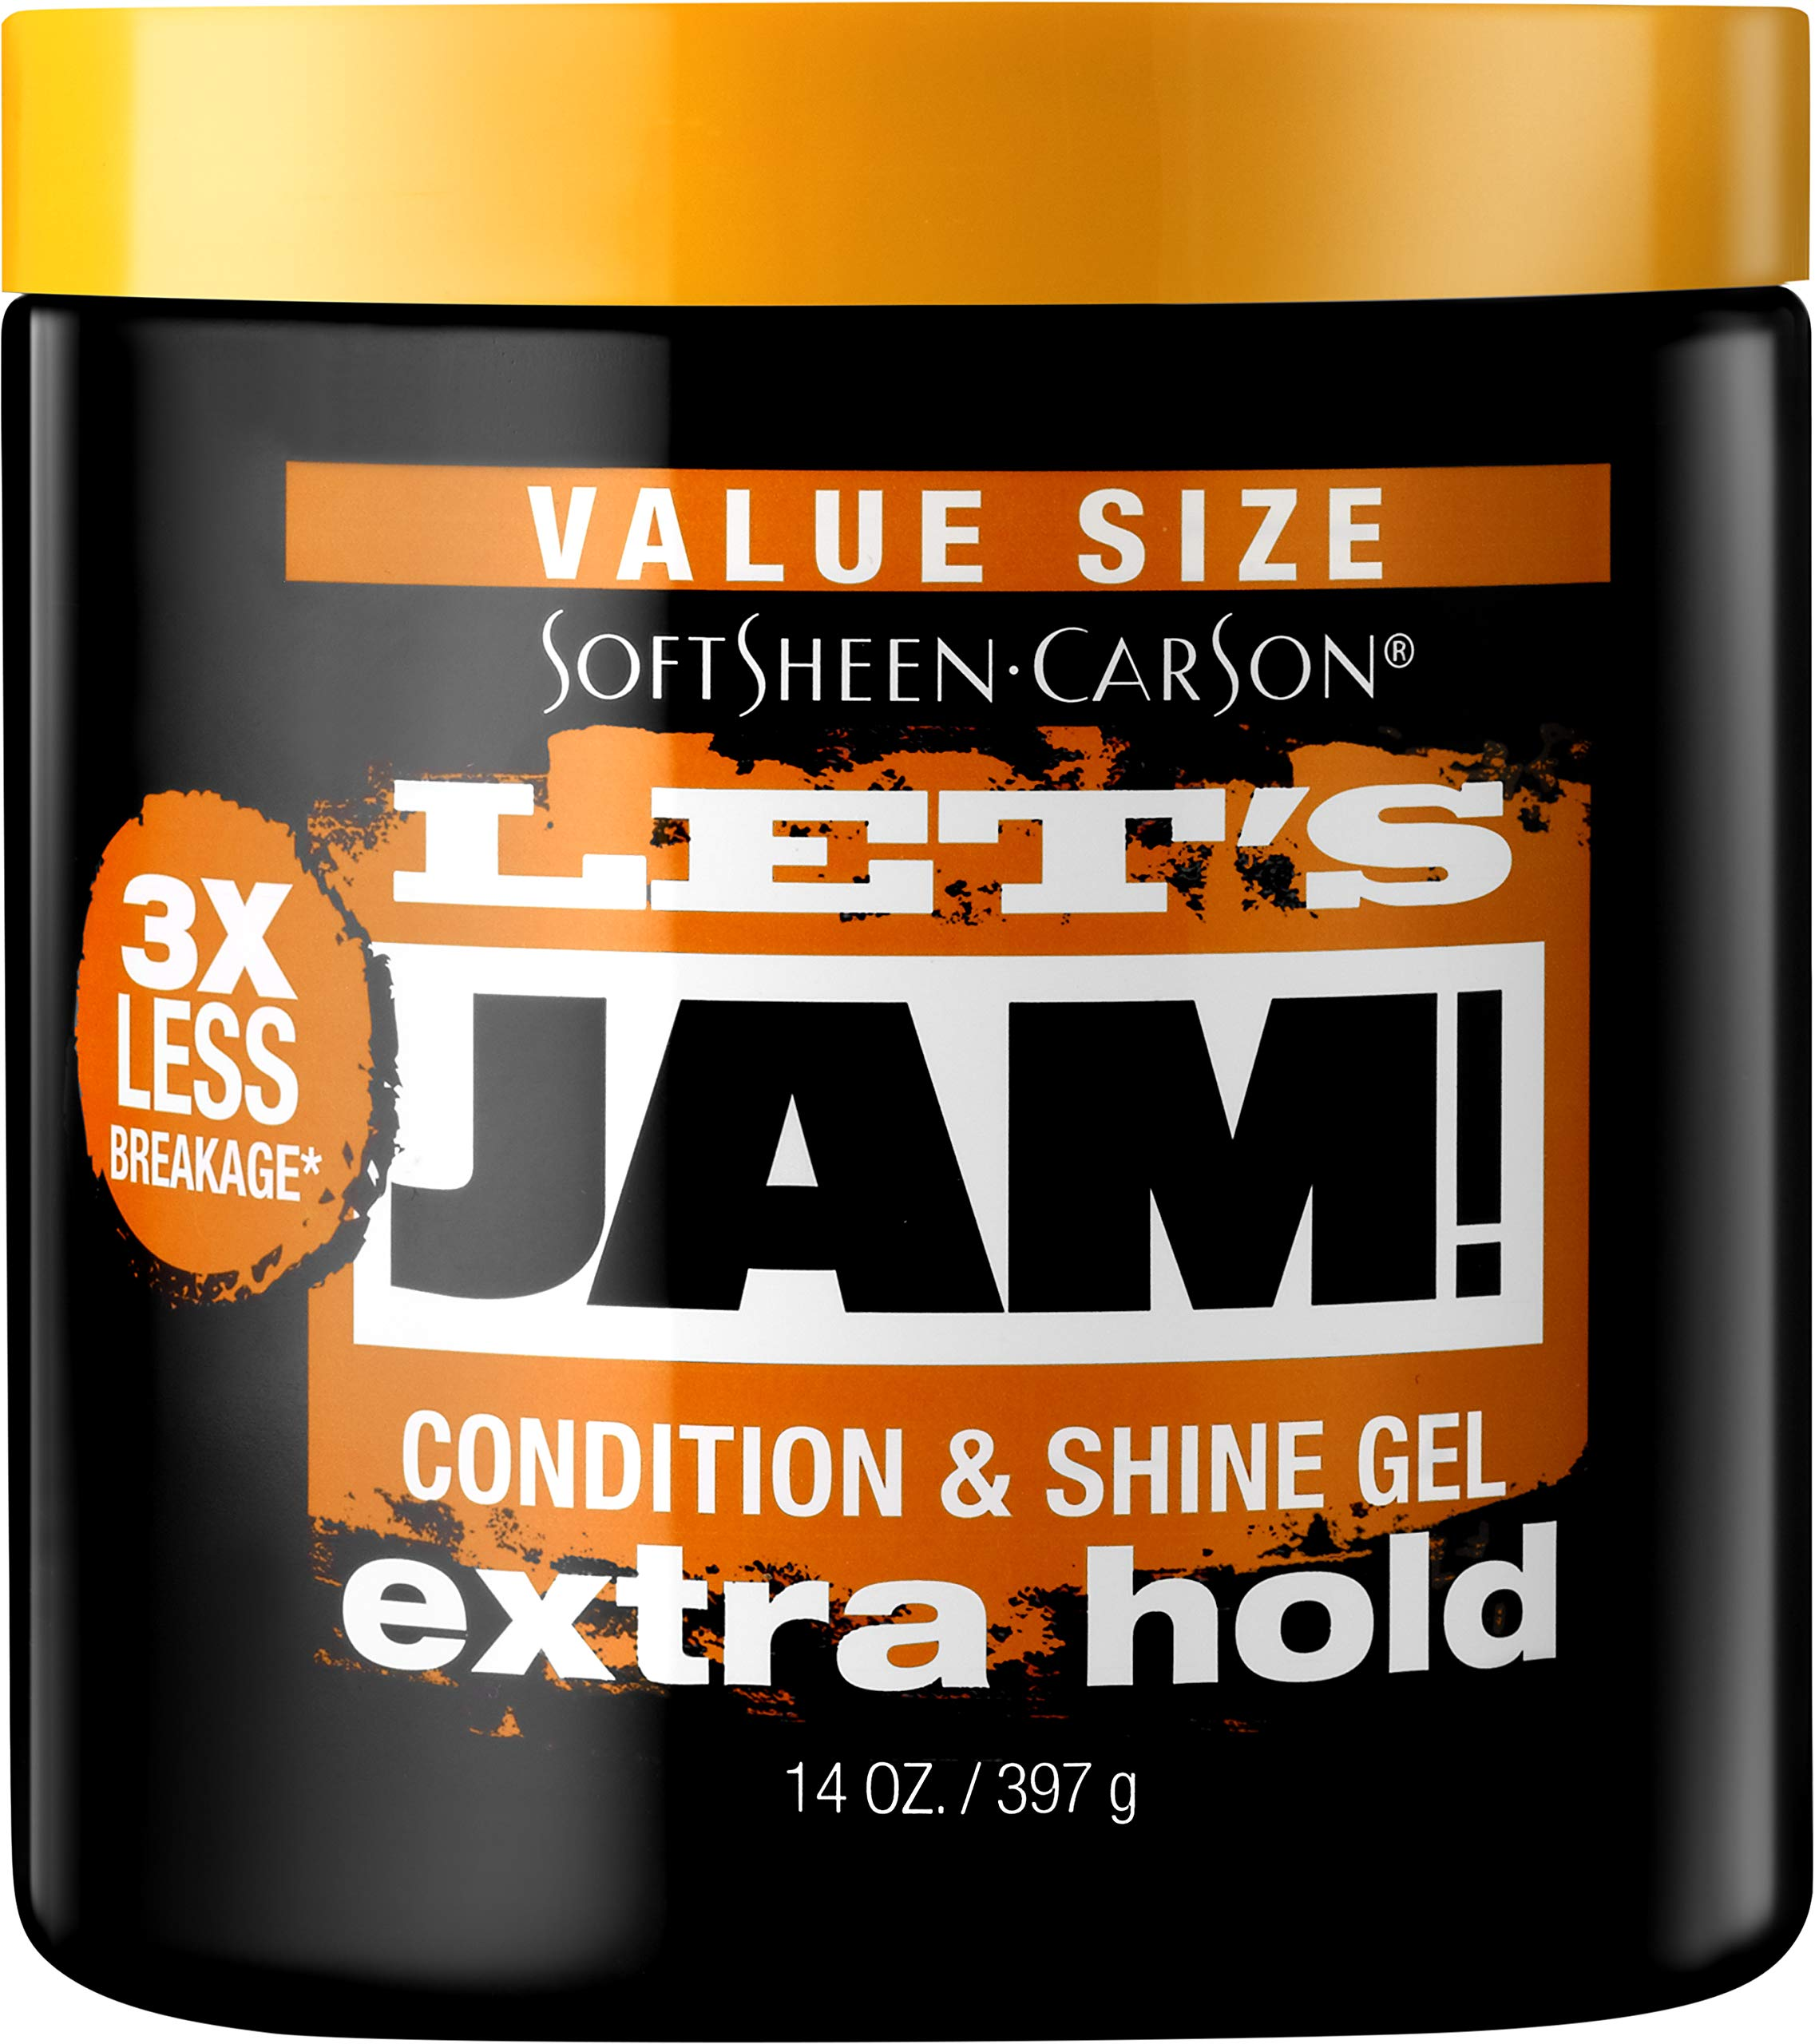 SoftSheen-Carson Let's Jam! Shining and Conditioning Hair Gel by Dark and Lovely, Extra Hold, All Hair Types, Styling Gel Great for Braiding, Twisting & Smooth Edges, Extra Hold, 14 oz